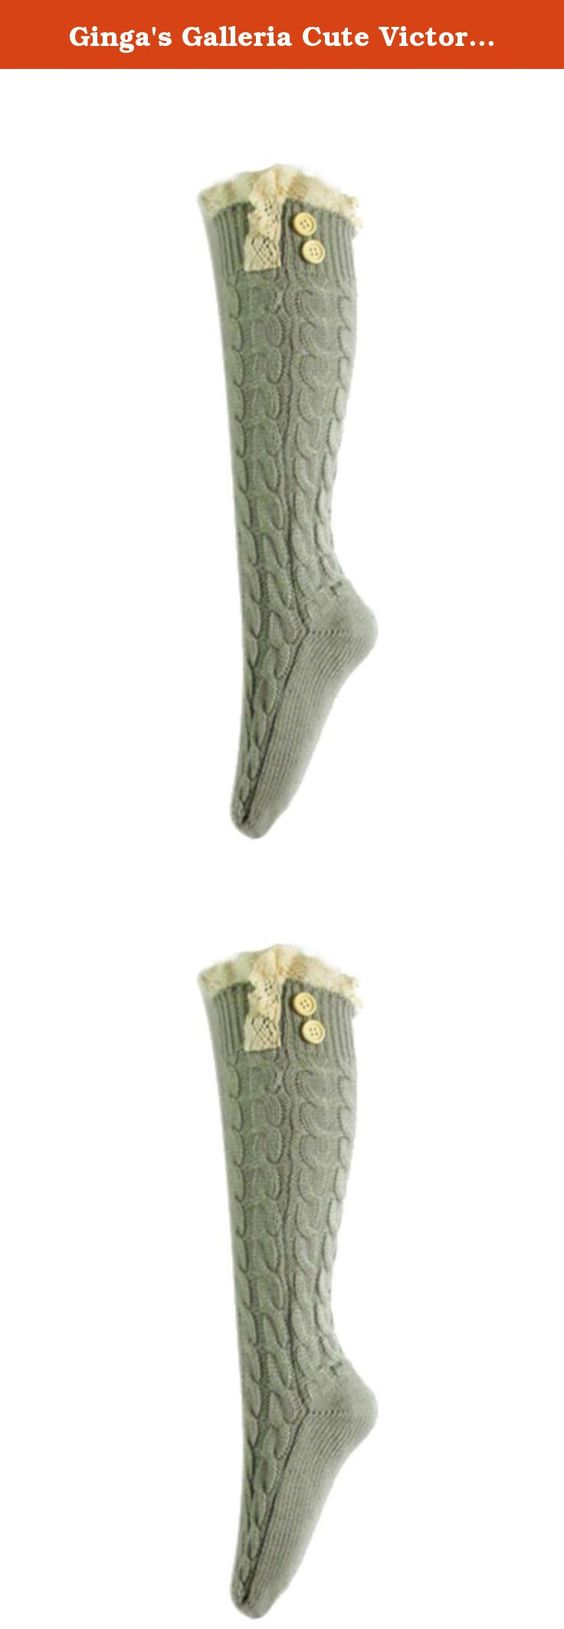 Ginga's Galleria Cute Victorian Vintage Twist Cable Knit Boot Socks with Lace & Buttons (Grey). New from Ginga's Galleria, extremely fashionable and warm cable knit boot socks. These adorable new socks are soft, warm and prefect for adding a flair of style to any pair of boots. Trimmed at the top in lace and embellished with wood buttons, these socks are perfect for adding a touch of whimsy to your fall and winter ensembles.